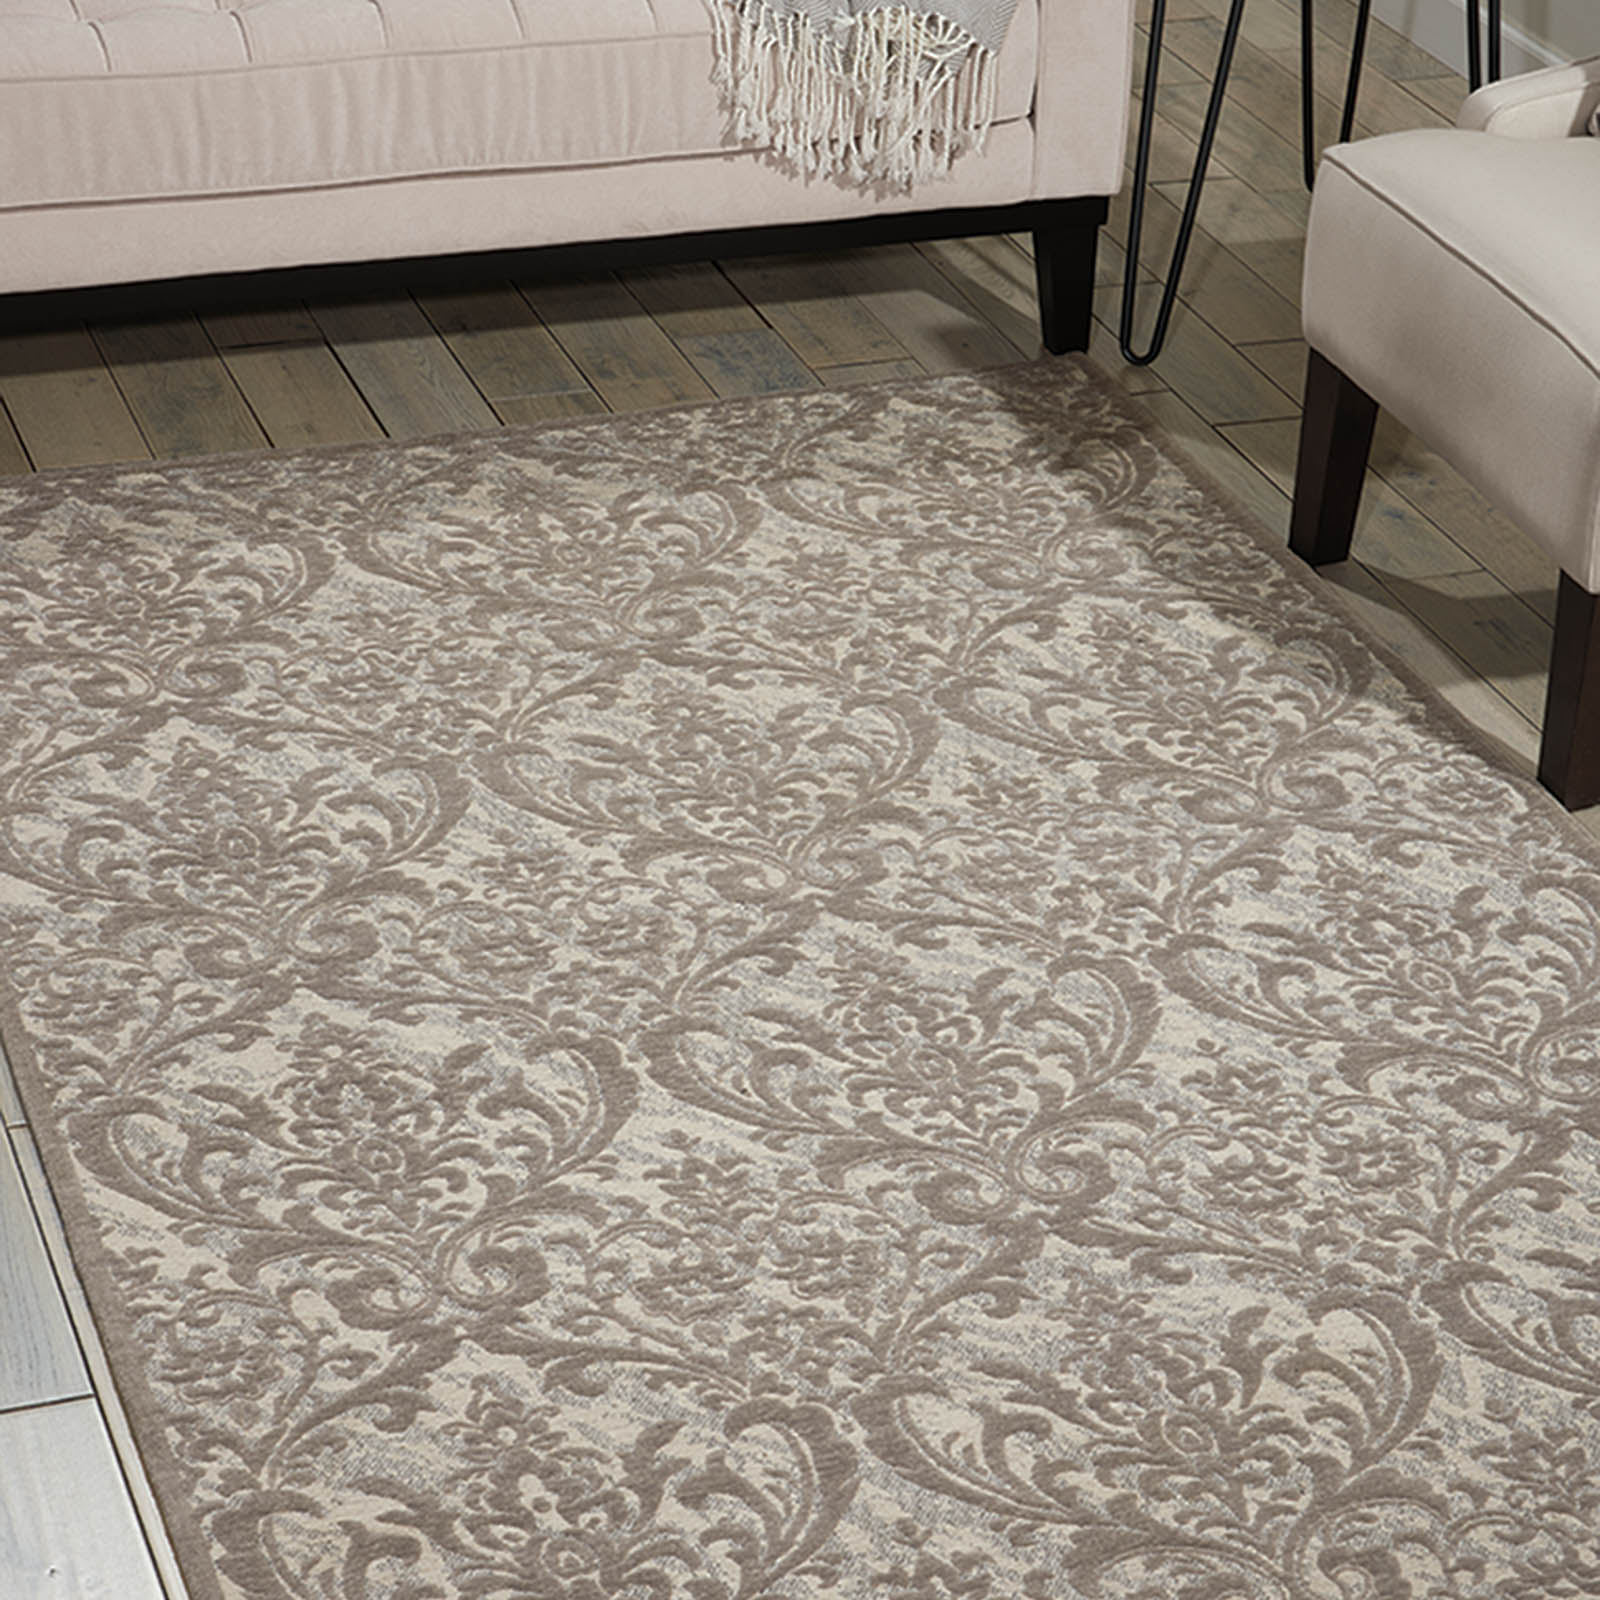 Damask Rugs DAS02 In Ivory And Grey By Nourison